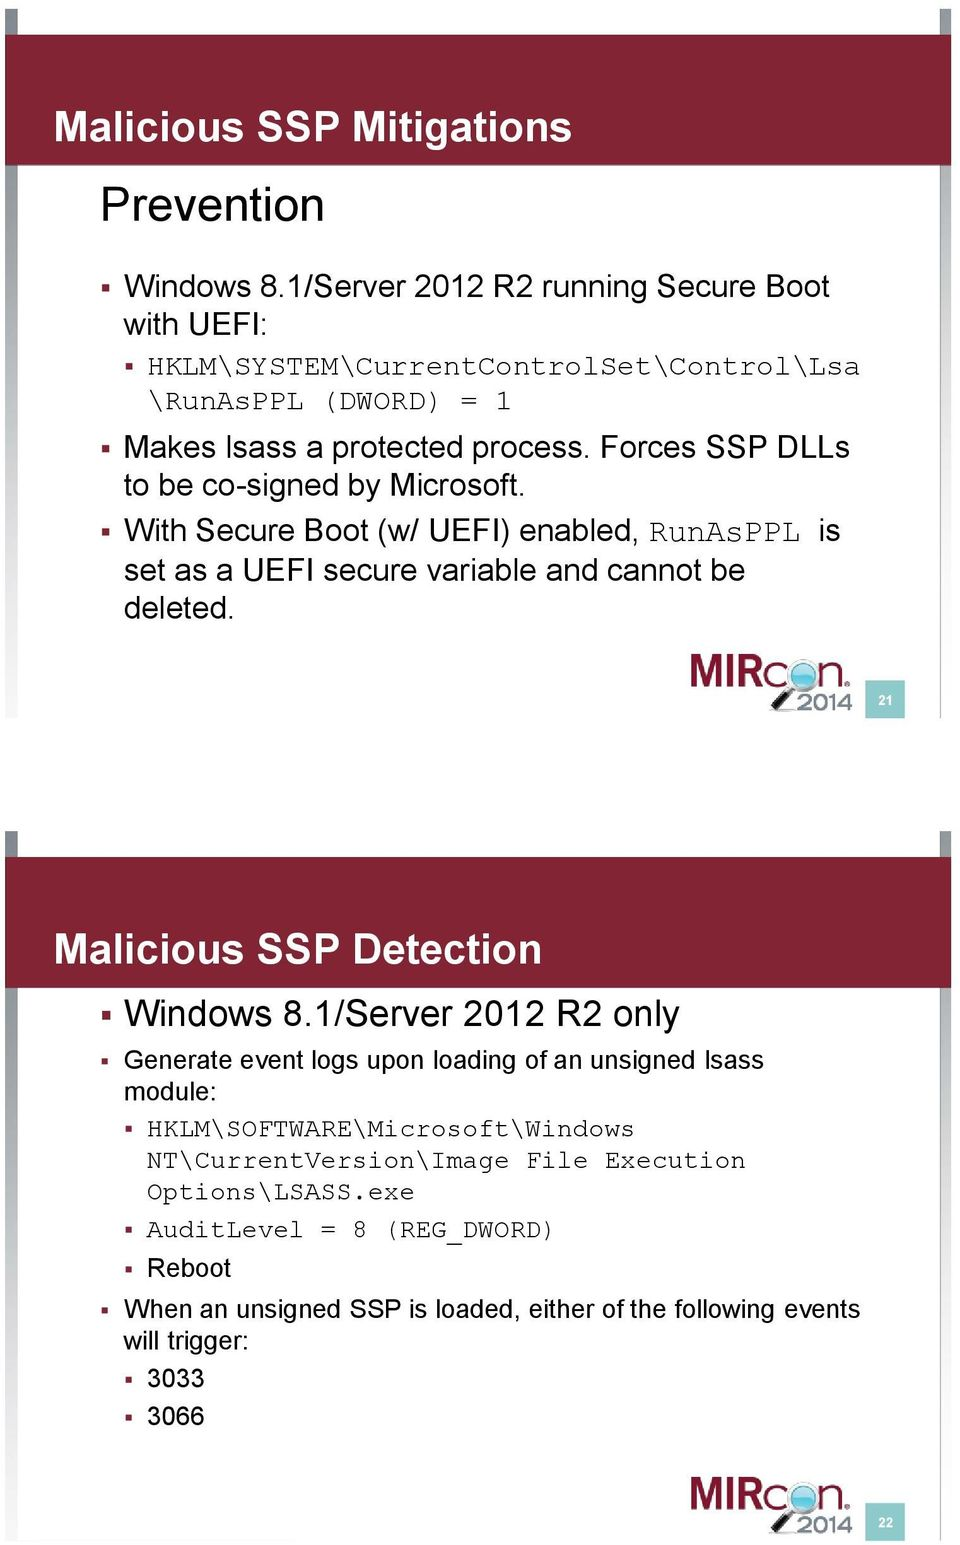 Forces SSP DLLs to be co-signed by Microsoft. With Secure Boot (w/ UEFI) enabled, RunAsPPL is set as a UEFI secure variable and cannot be deleted.